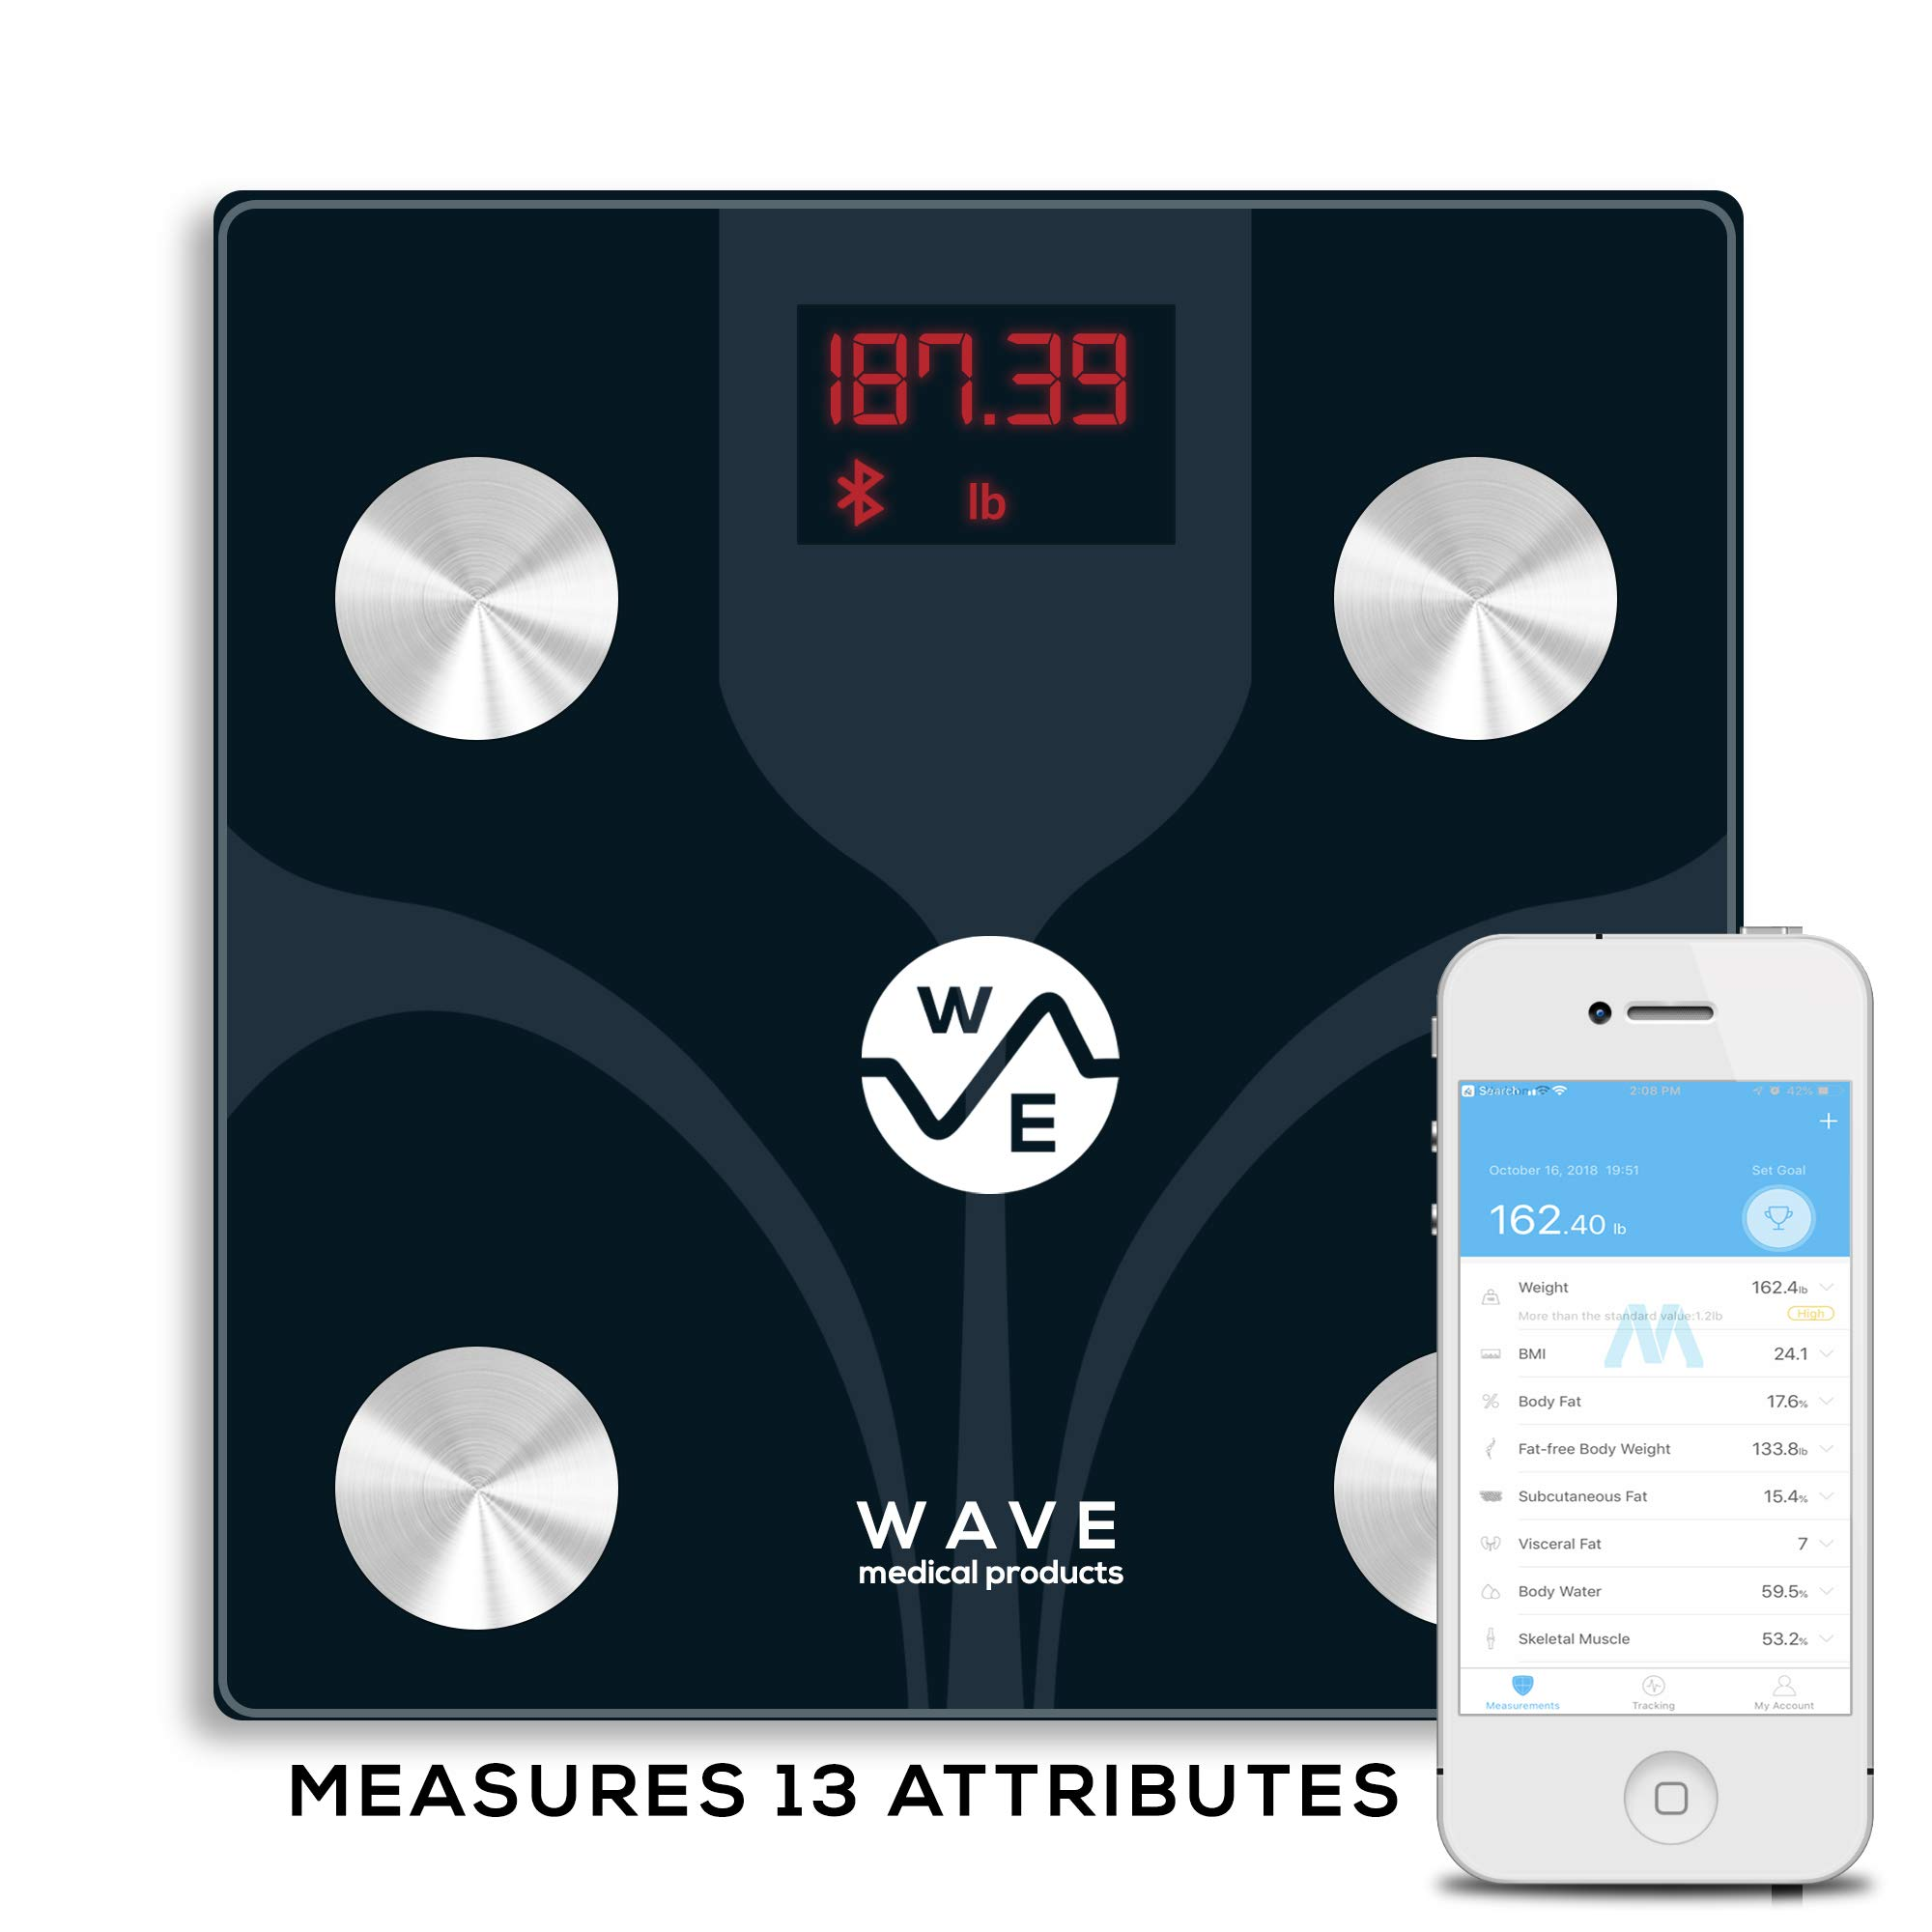 WAVE Bluetooth Body Fat Scale, Smart BMI Digital Wireless Bathroom Weight Scale - Tracks 13 Composition Metrics incl. BMI - For Android & iOS - Syncs with Fitbit & More - Best Bathroom Digital Scales